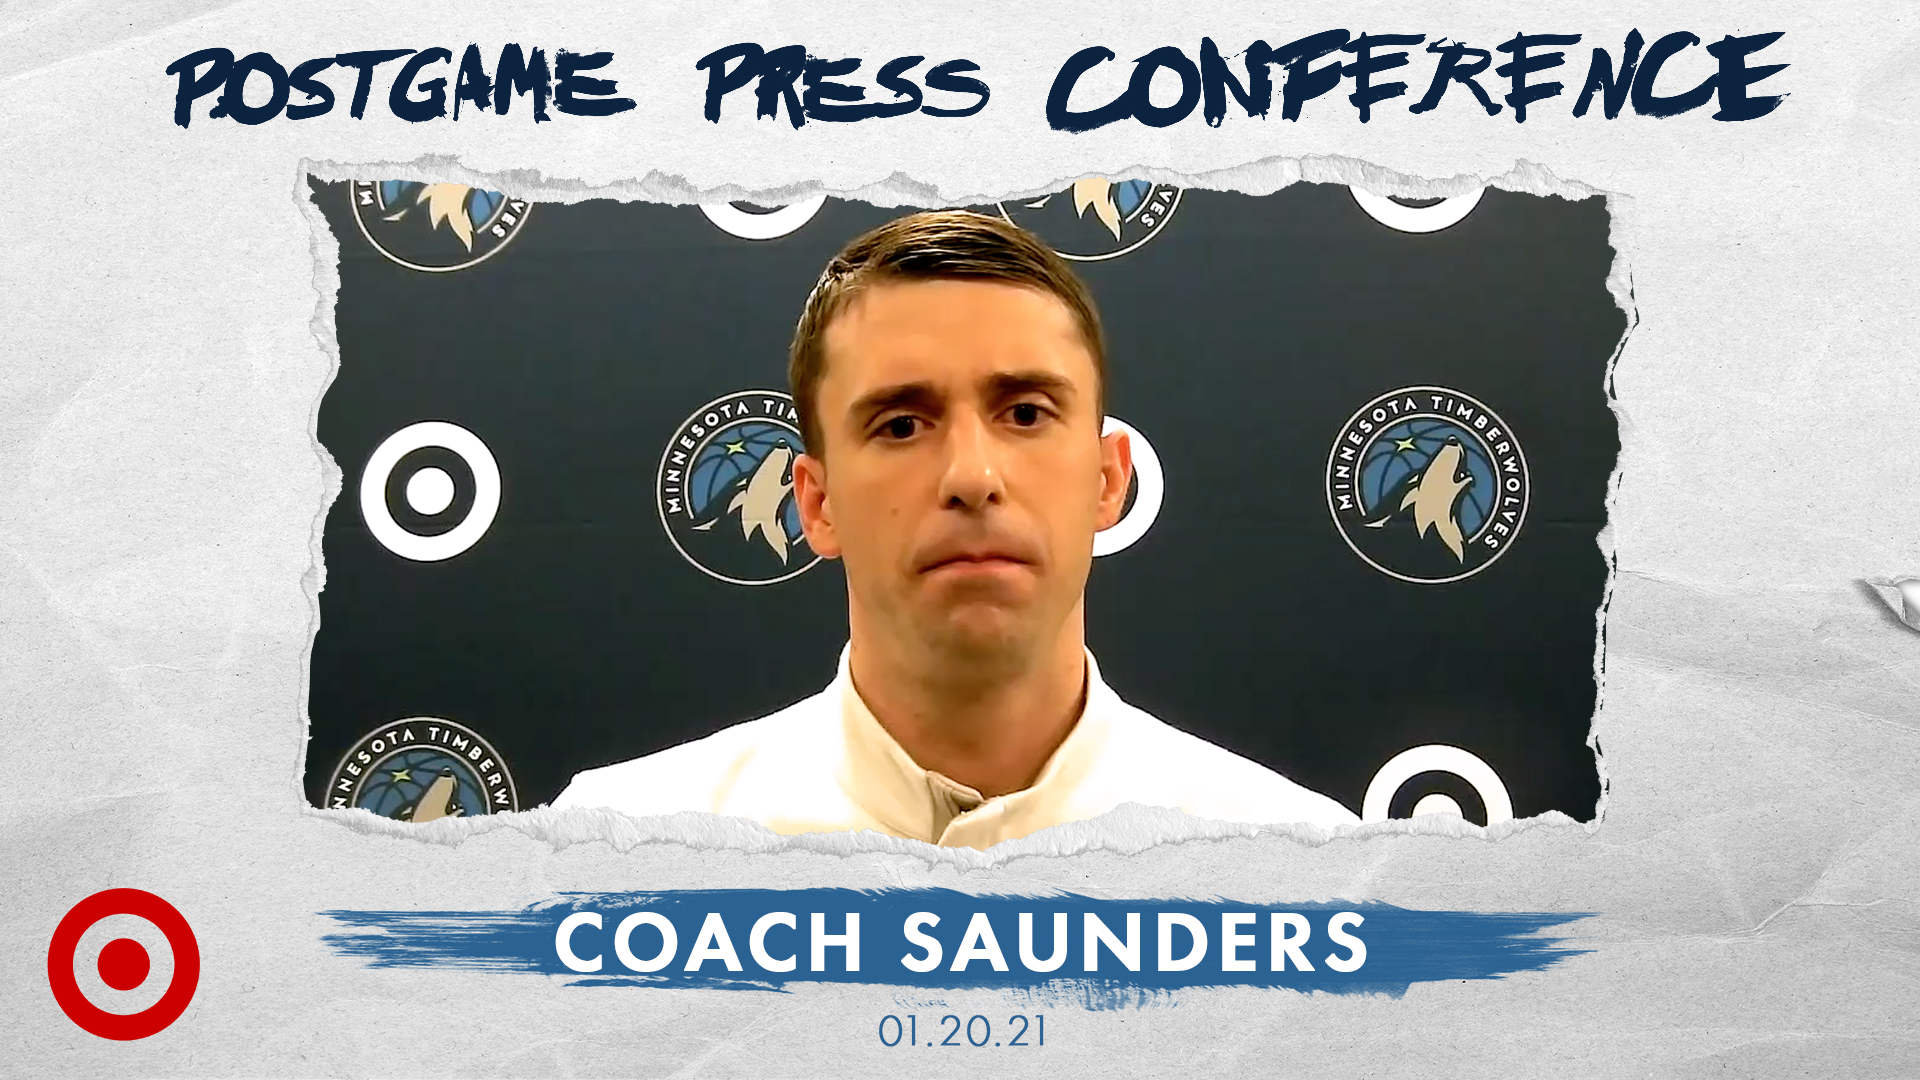 Coach Saunders Postgame Press Conference - January 20, 2021